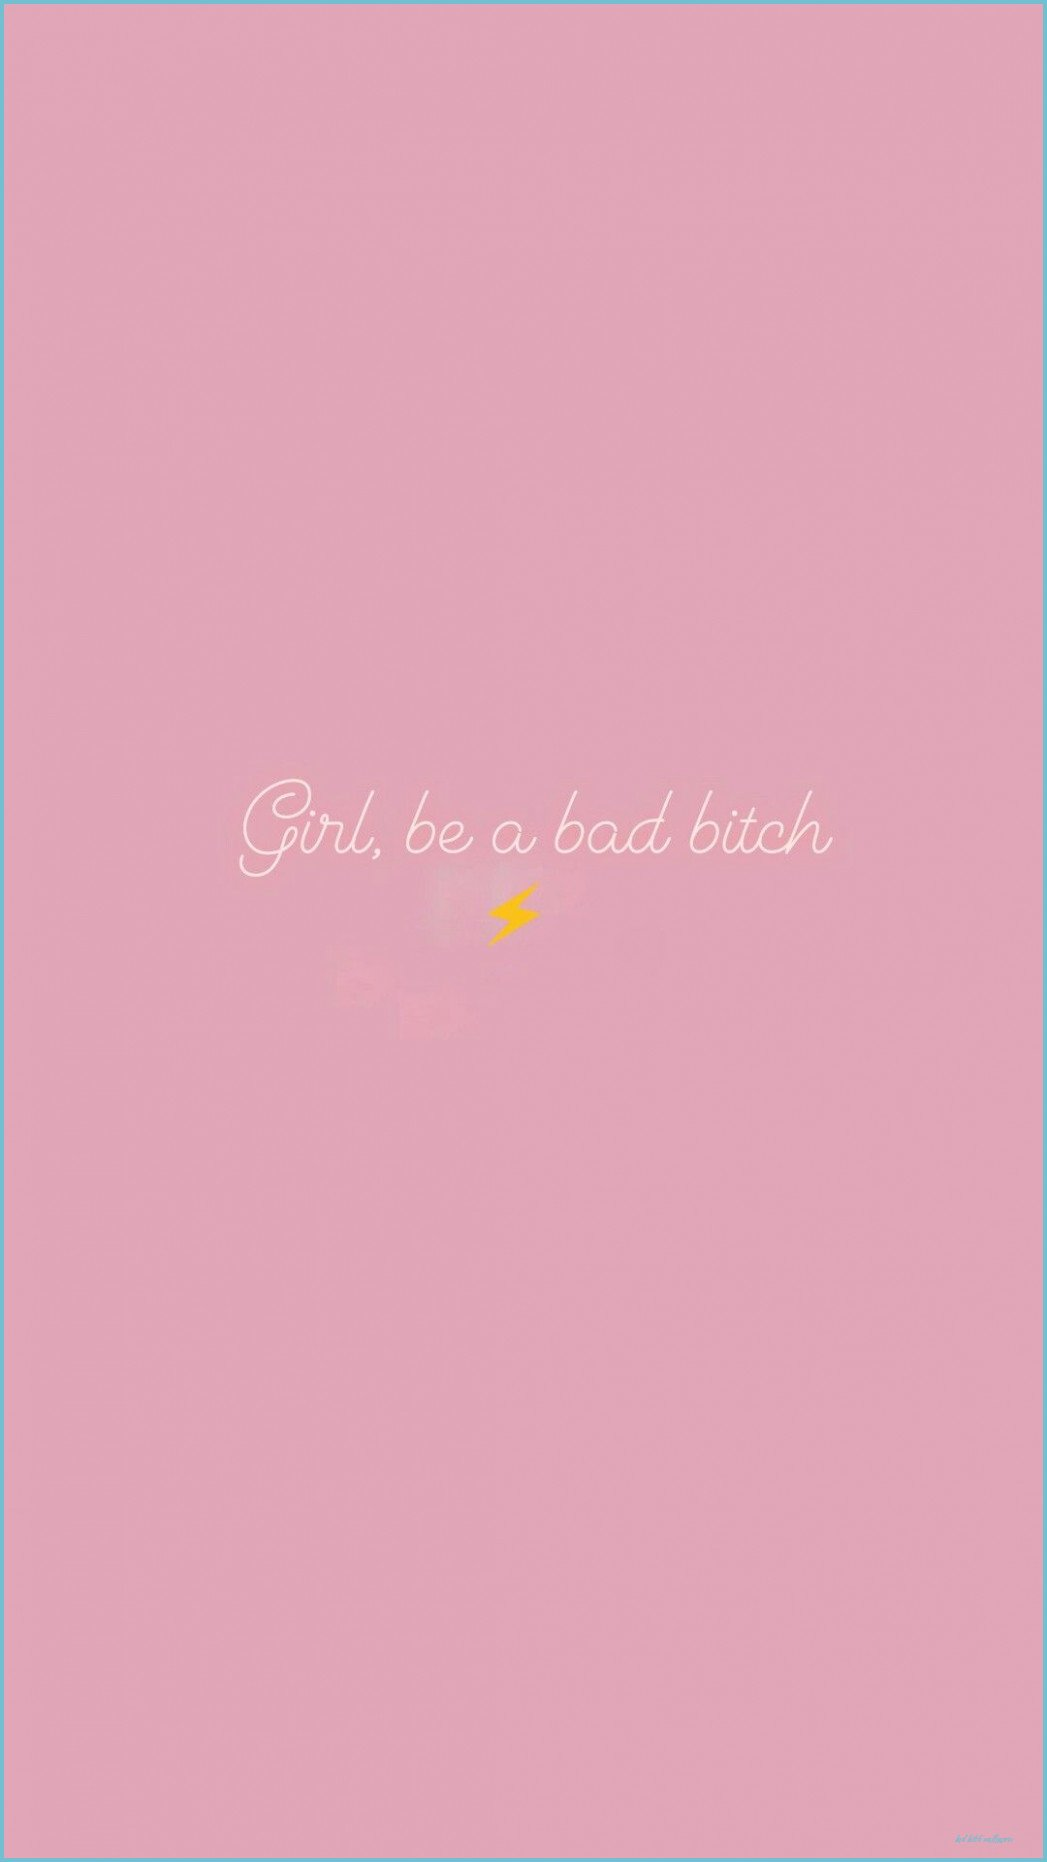 Pin on good vibes   bad bitch wallpapers Neat 1047x1862